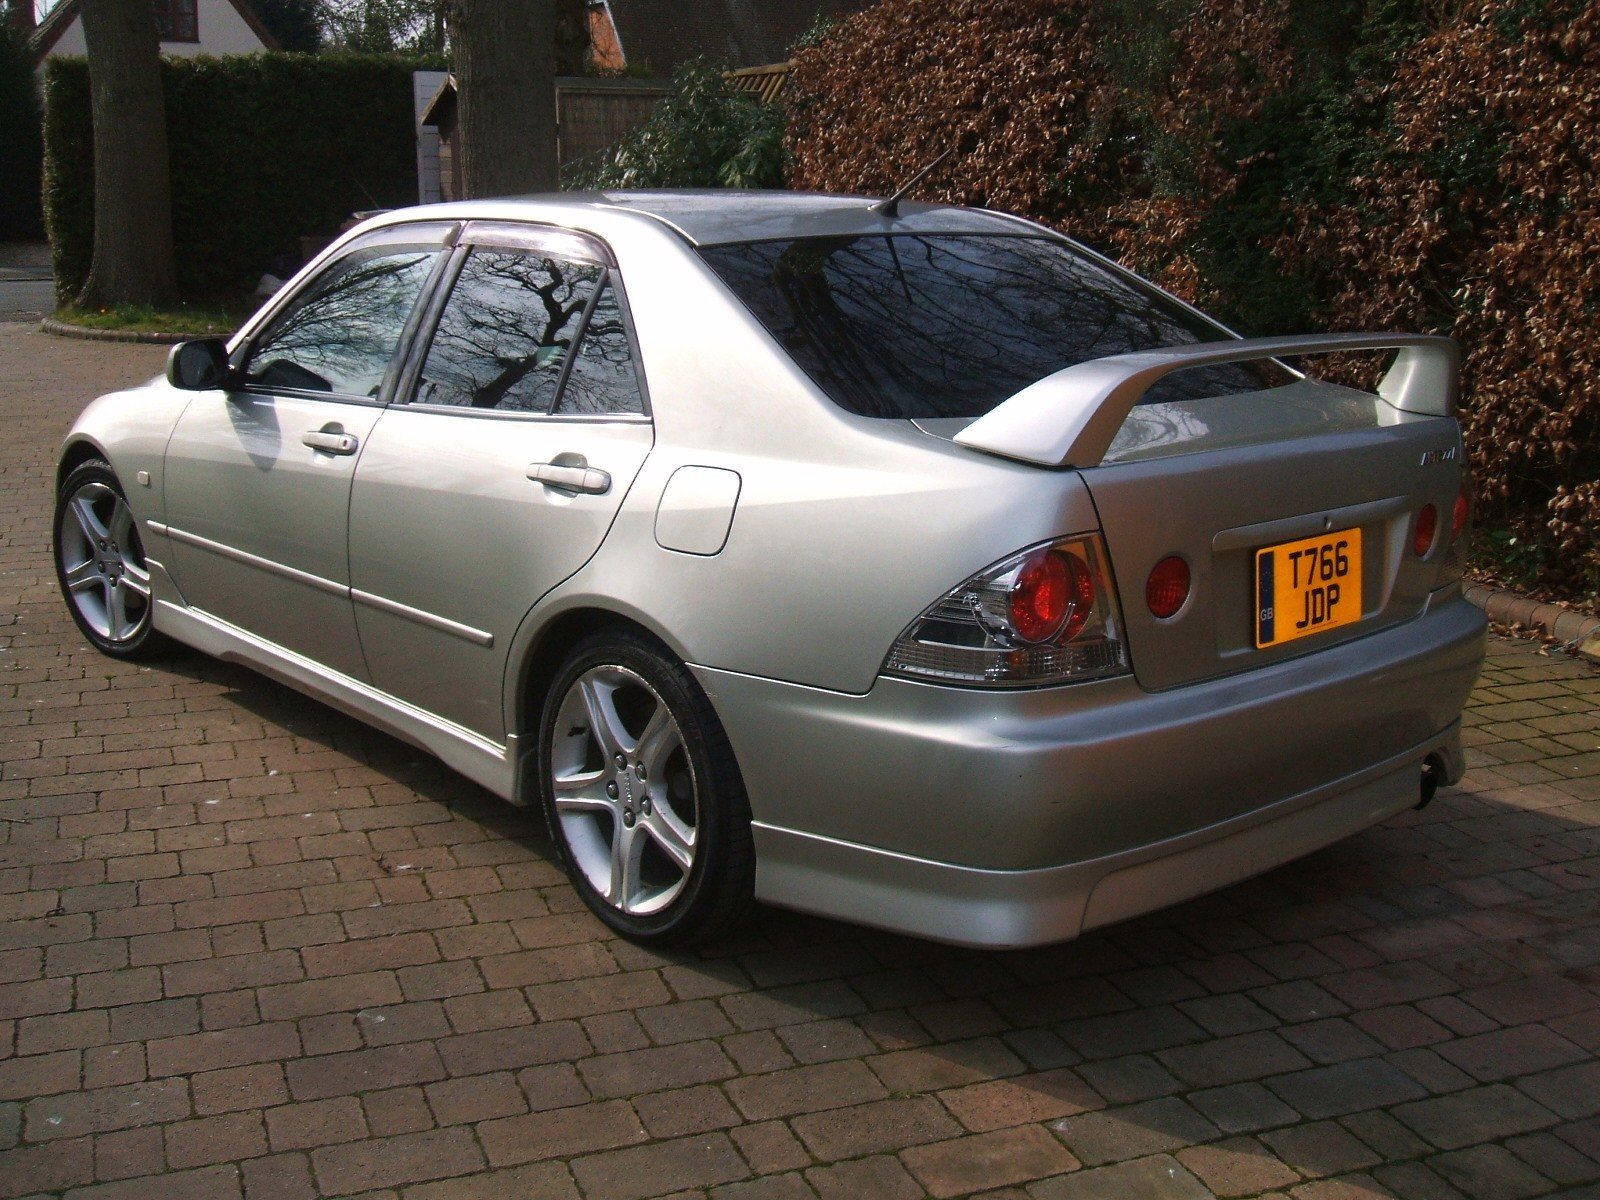 3530059885 in addition Sedan in addition 7129483207 moreover 3 door hatchback together with Coupe. on 3d car tuning